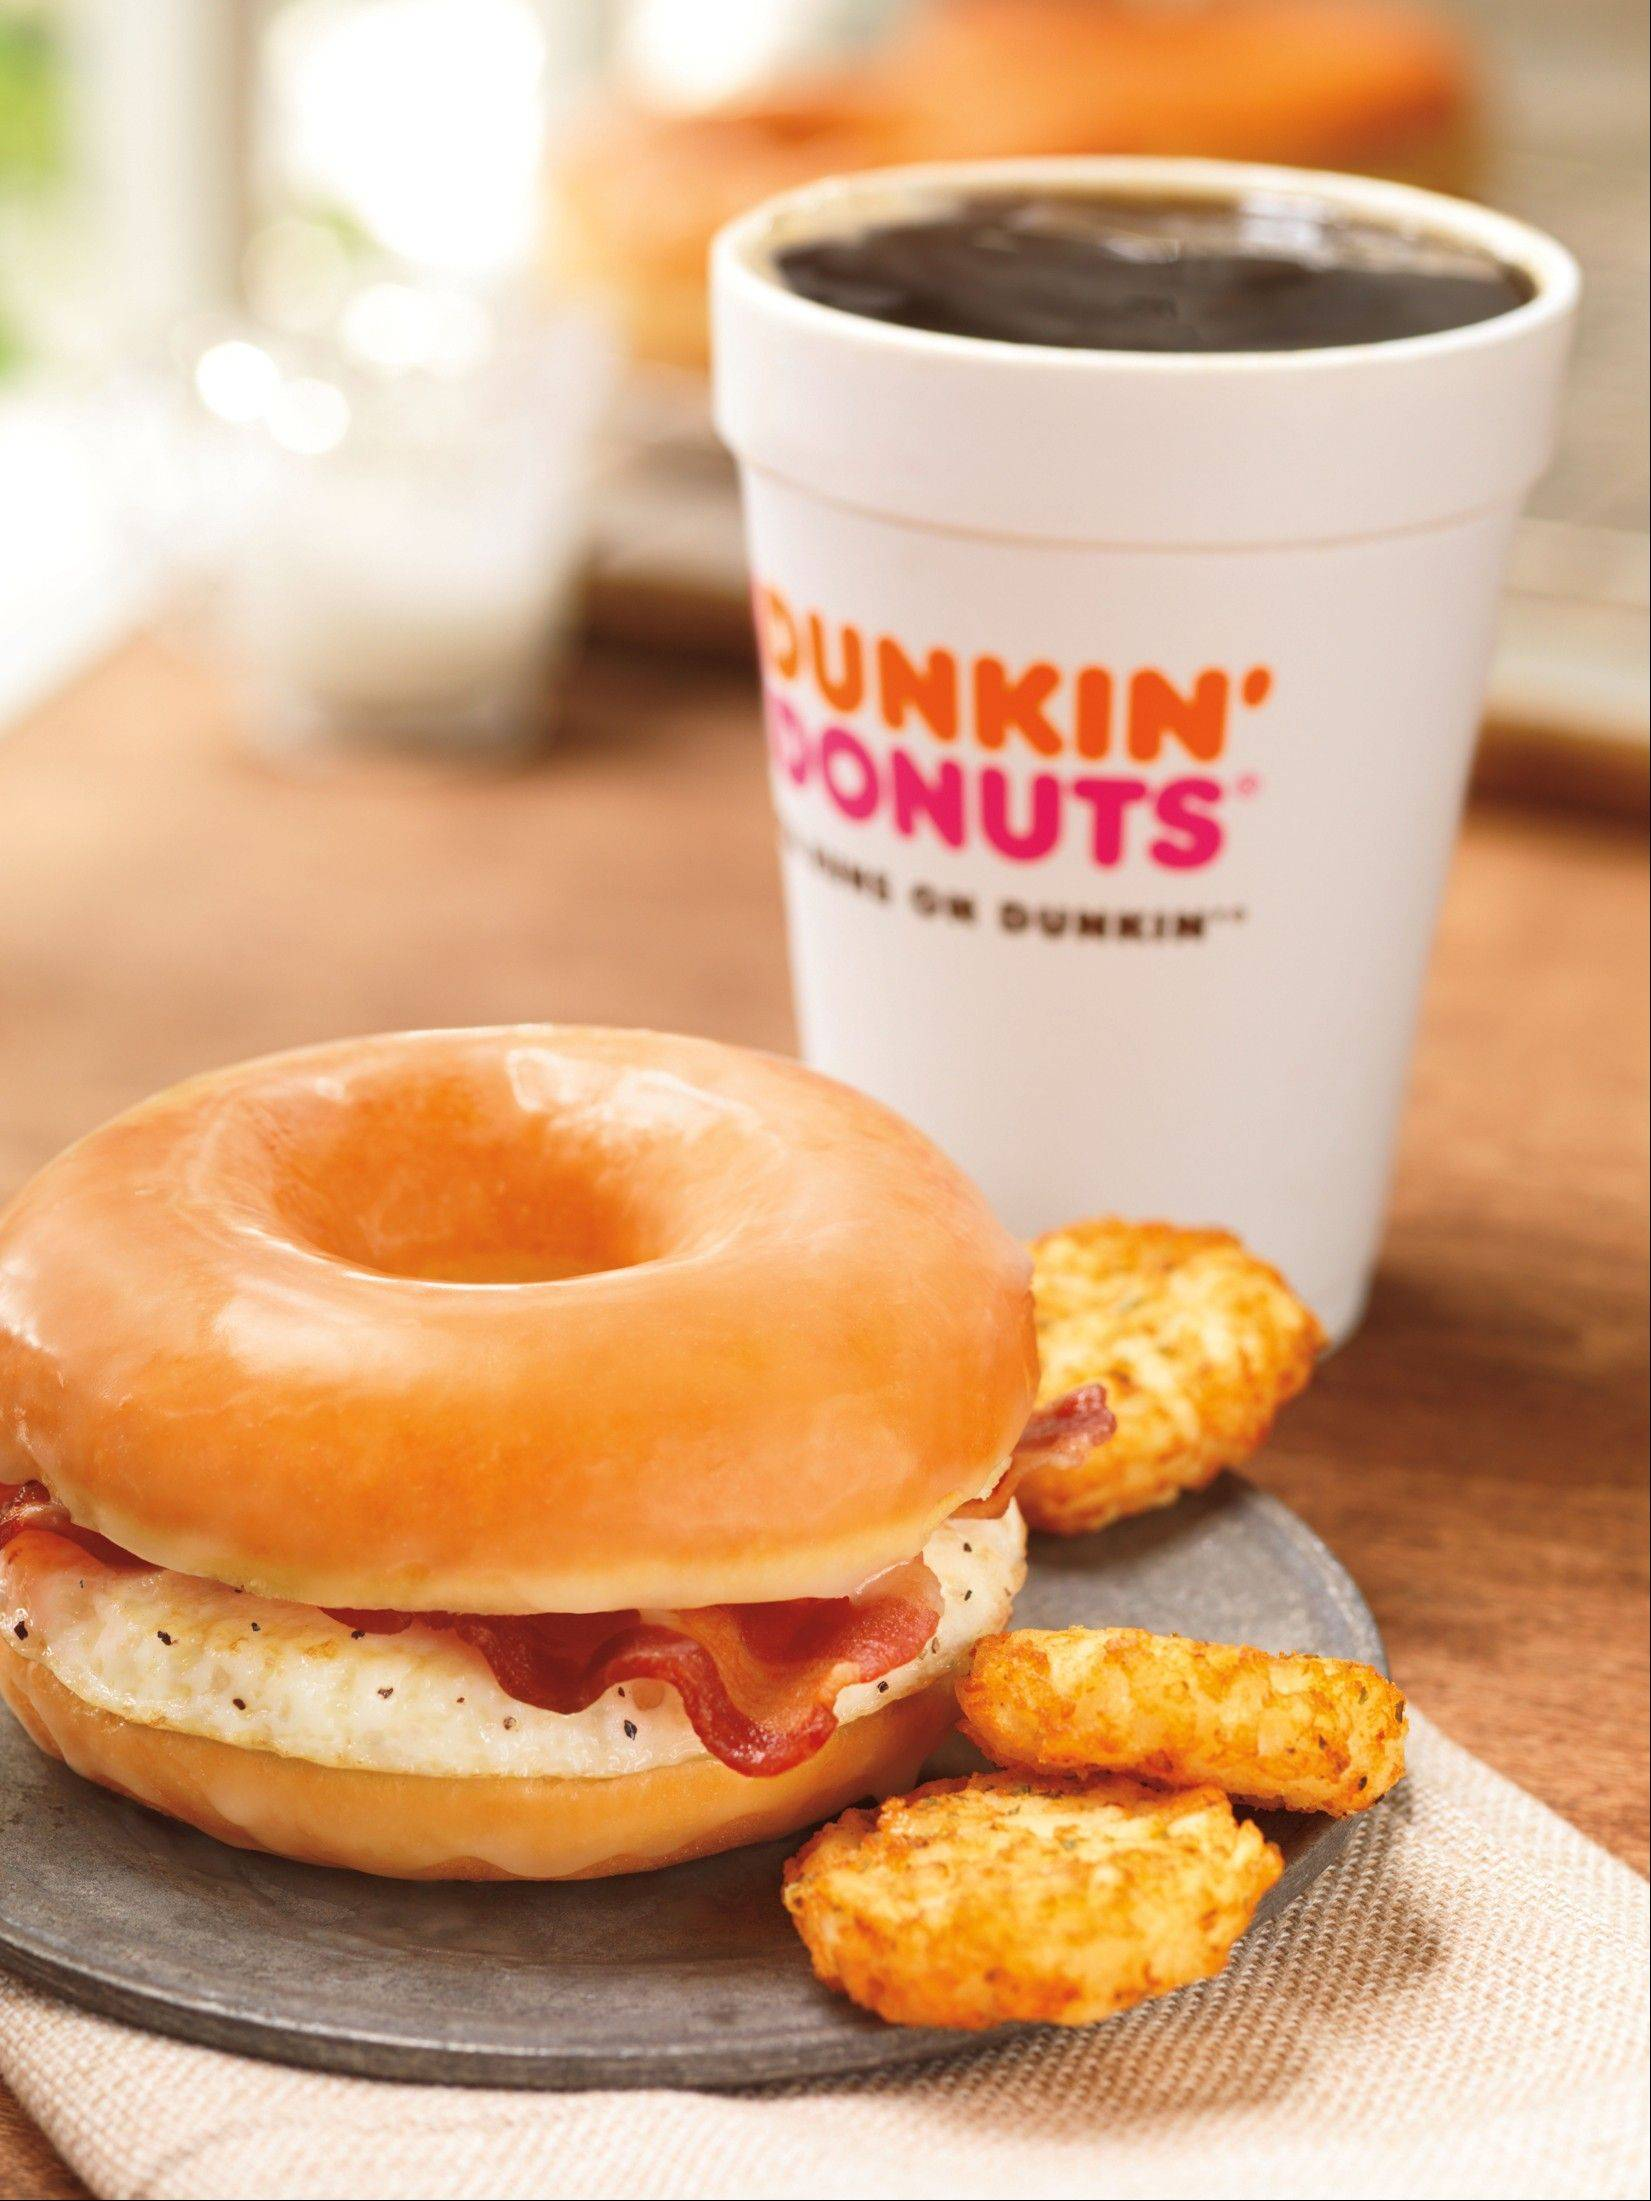 In an effort to get customers to stick around and visit after the morning rush, Dunkin' Brands Group Inc. has set in motion one of the most radical store redesigns since the chain's 1950 founding.